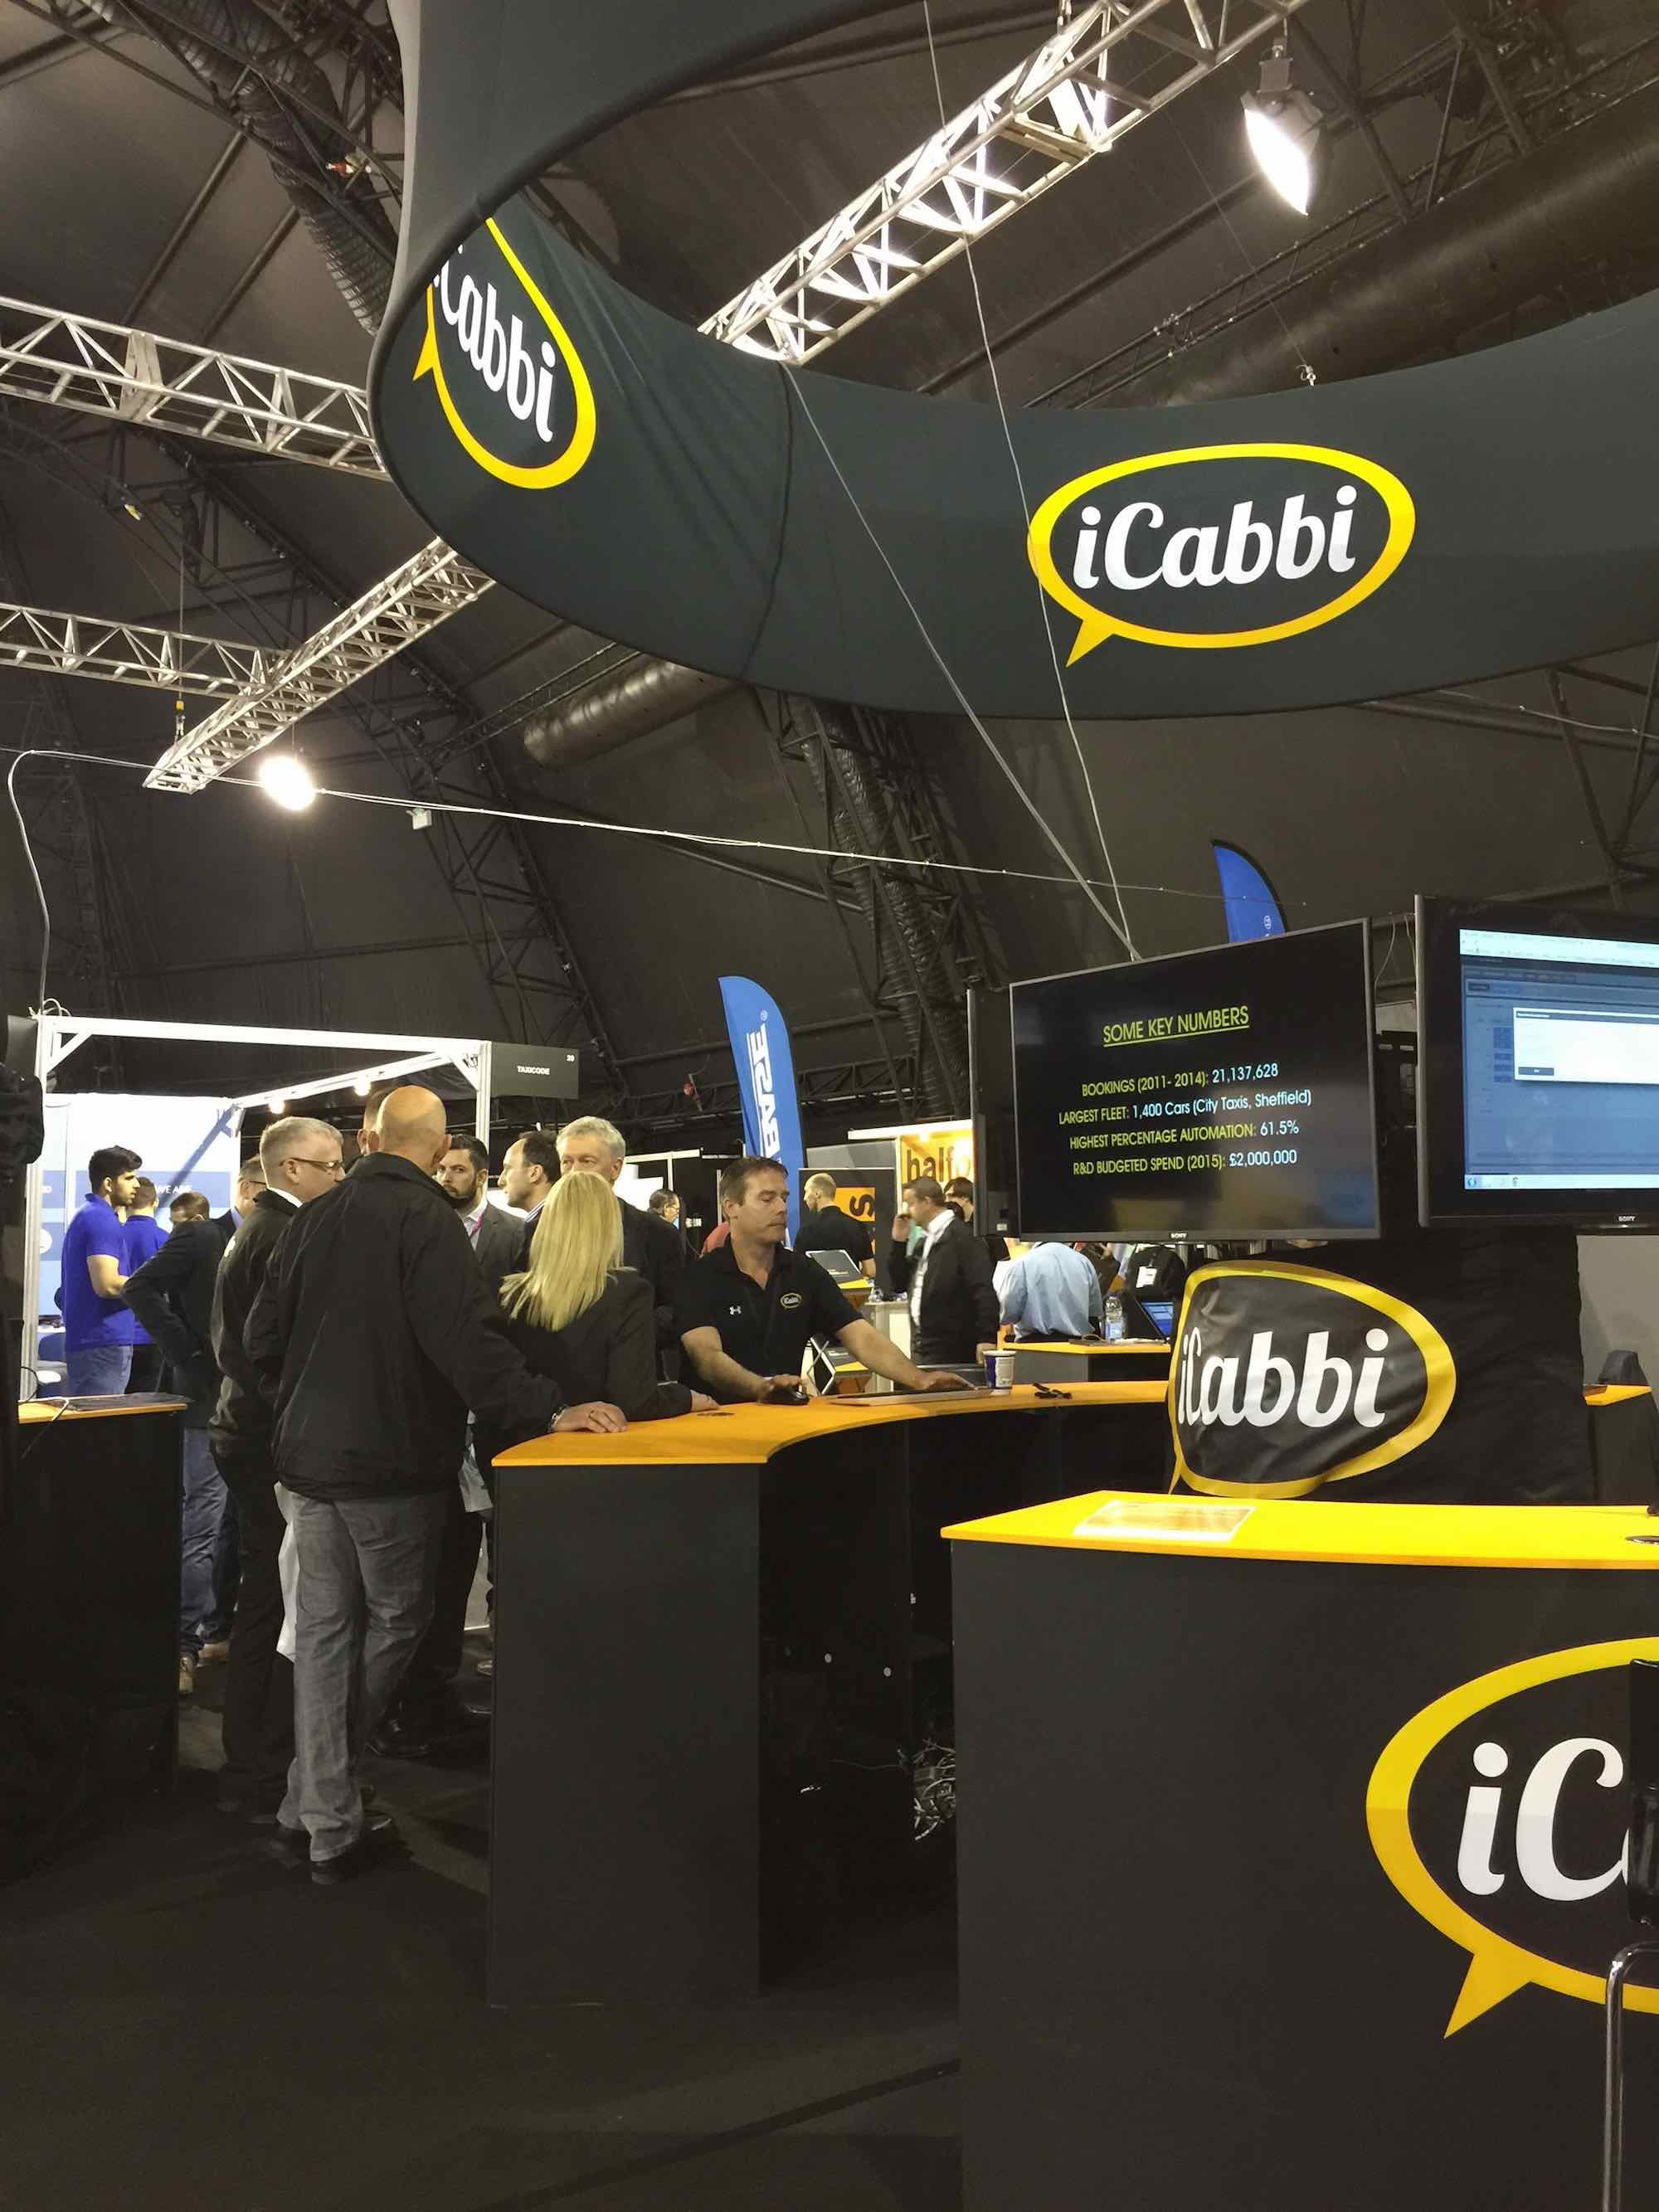 iCabbi picture at exhibition